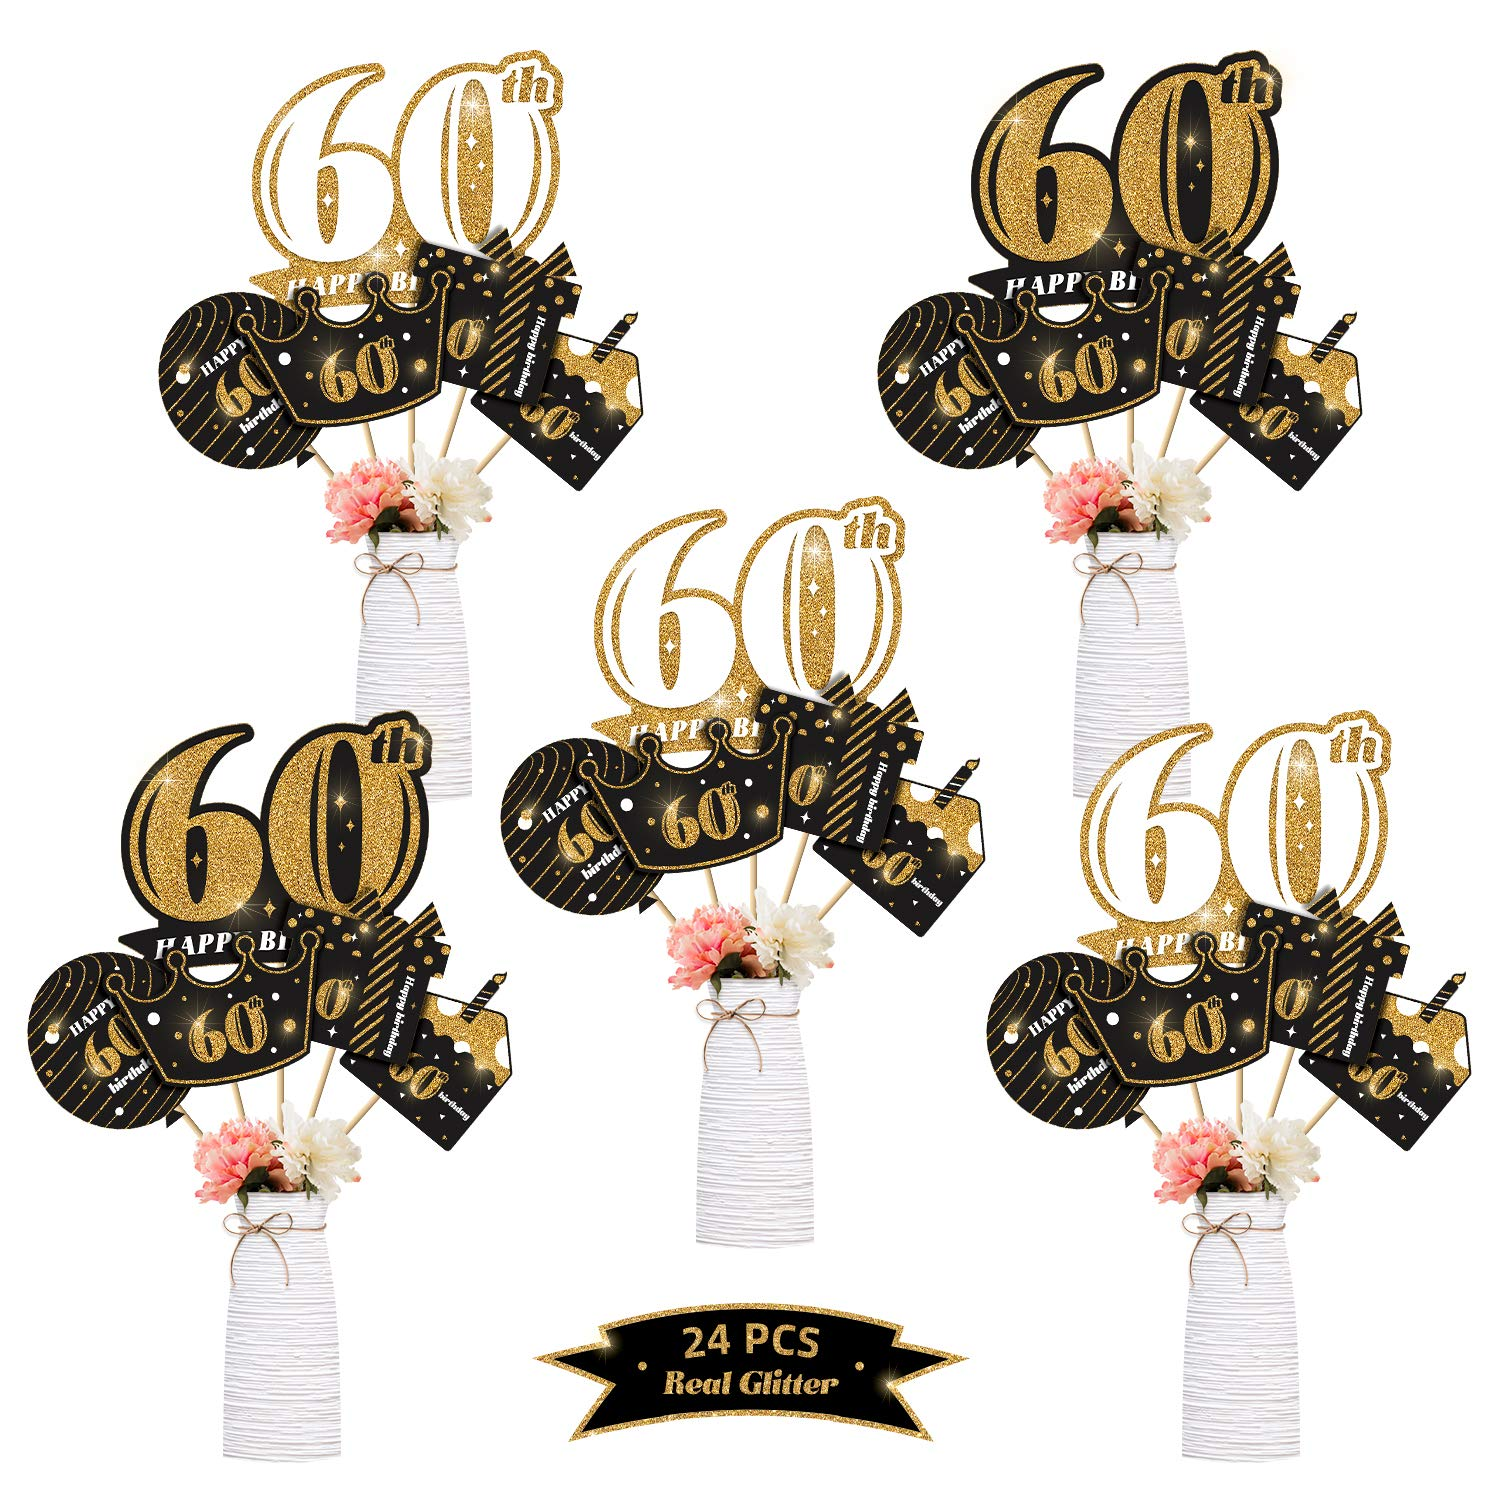 kortes 24Pack 60th Birthday Party Centerpiece Stickers (Real Glitter) Birthday Table Toppers Party Photo Booth Props, 60th Birthday Party Decoration Set